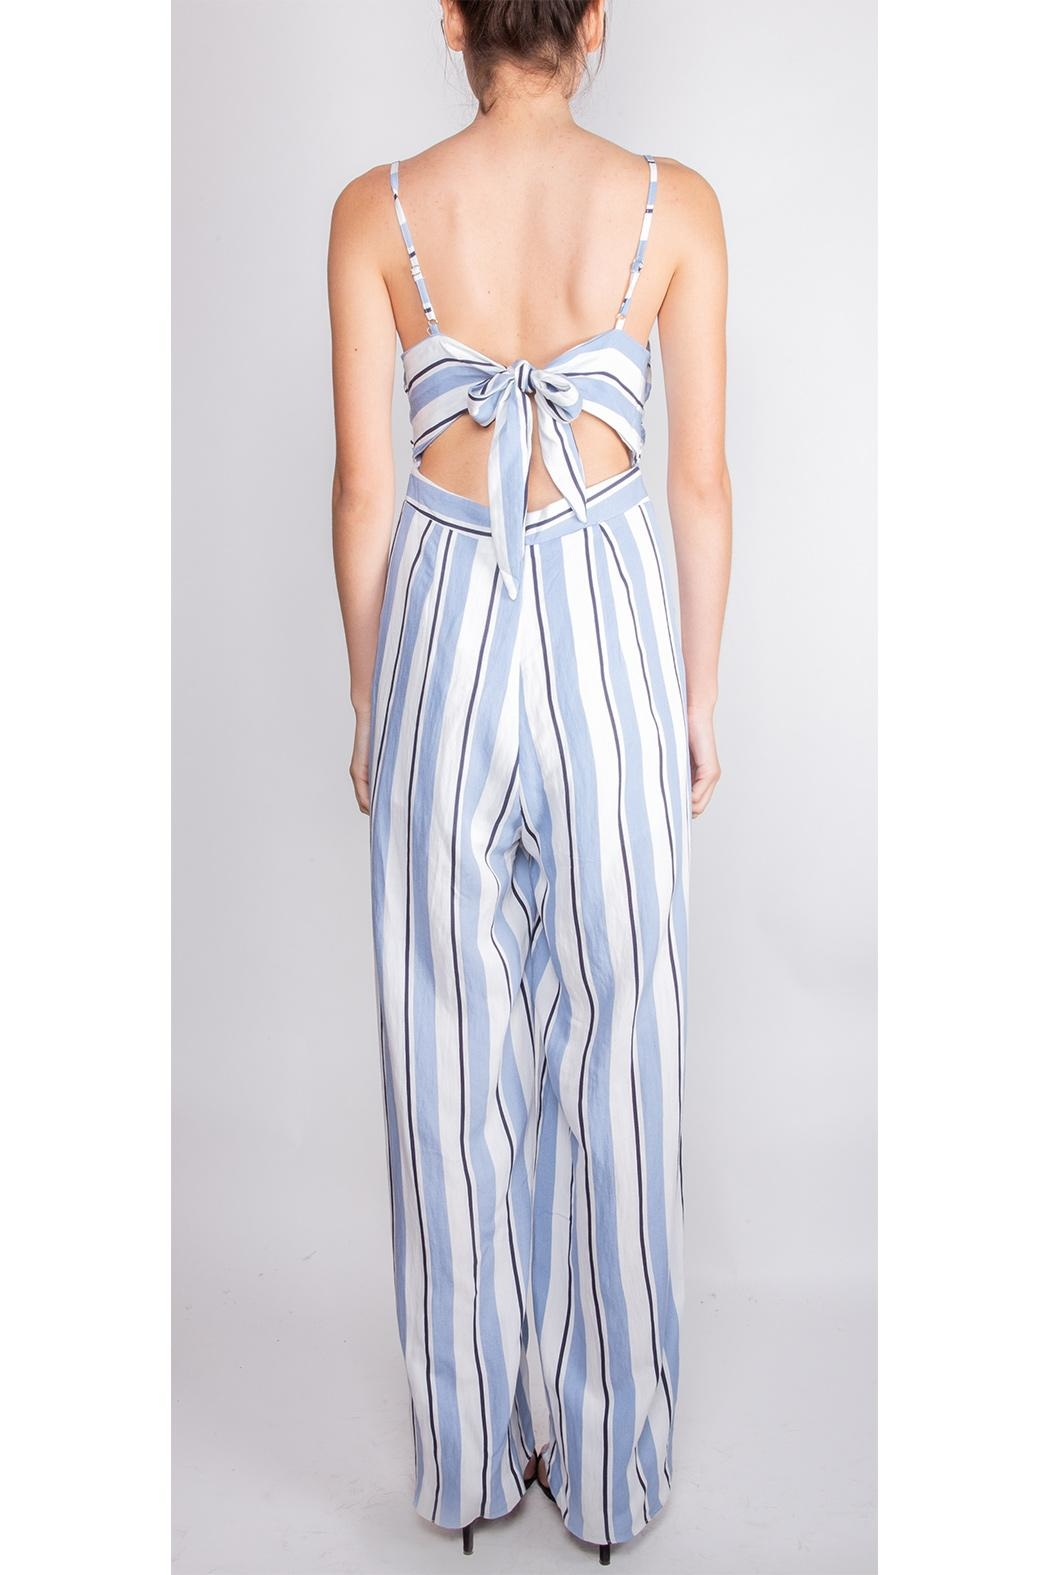 luxxel Striped Open-Leg Jumpsuit - Back Cropped Image